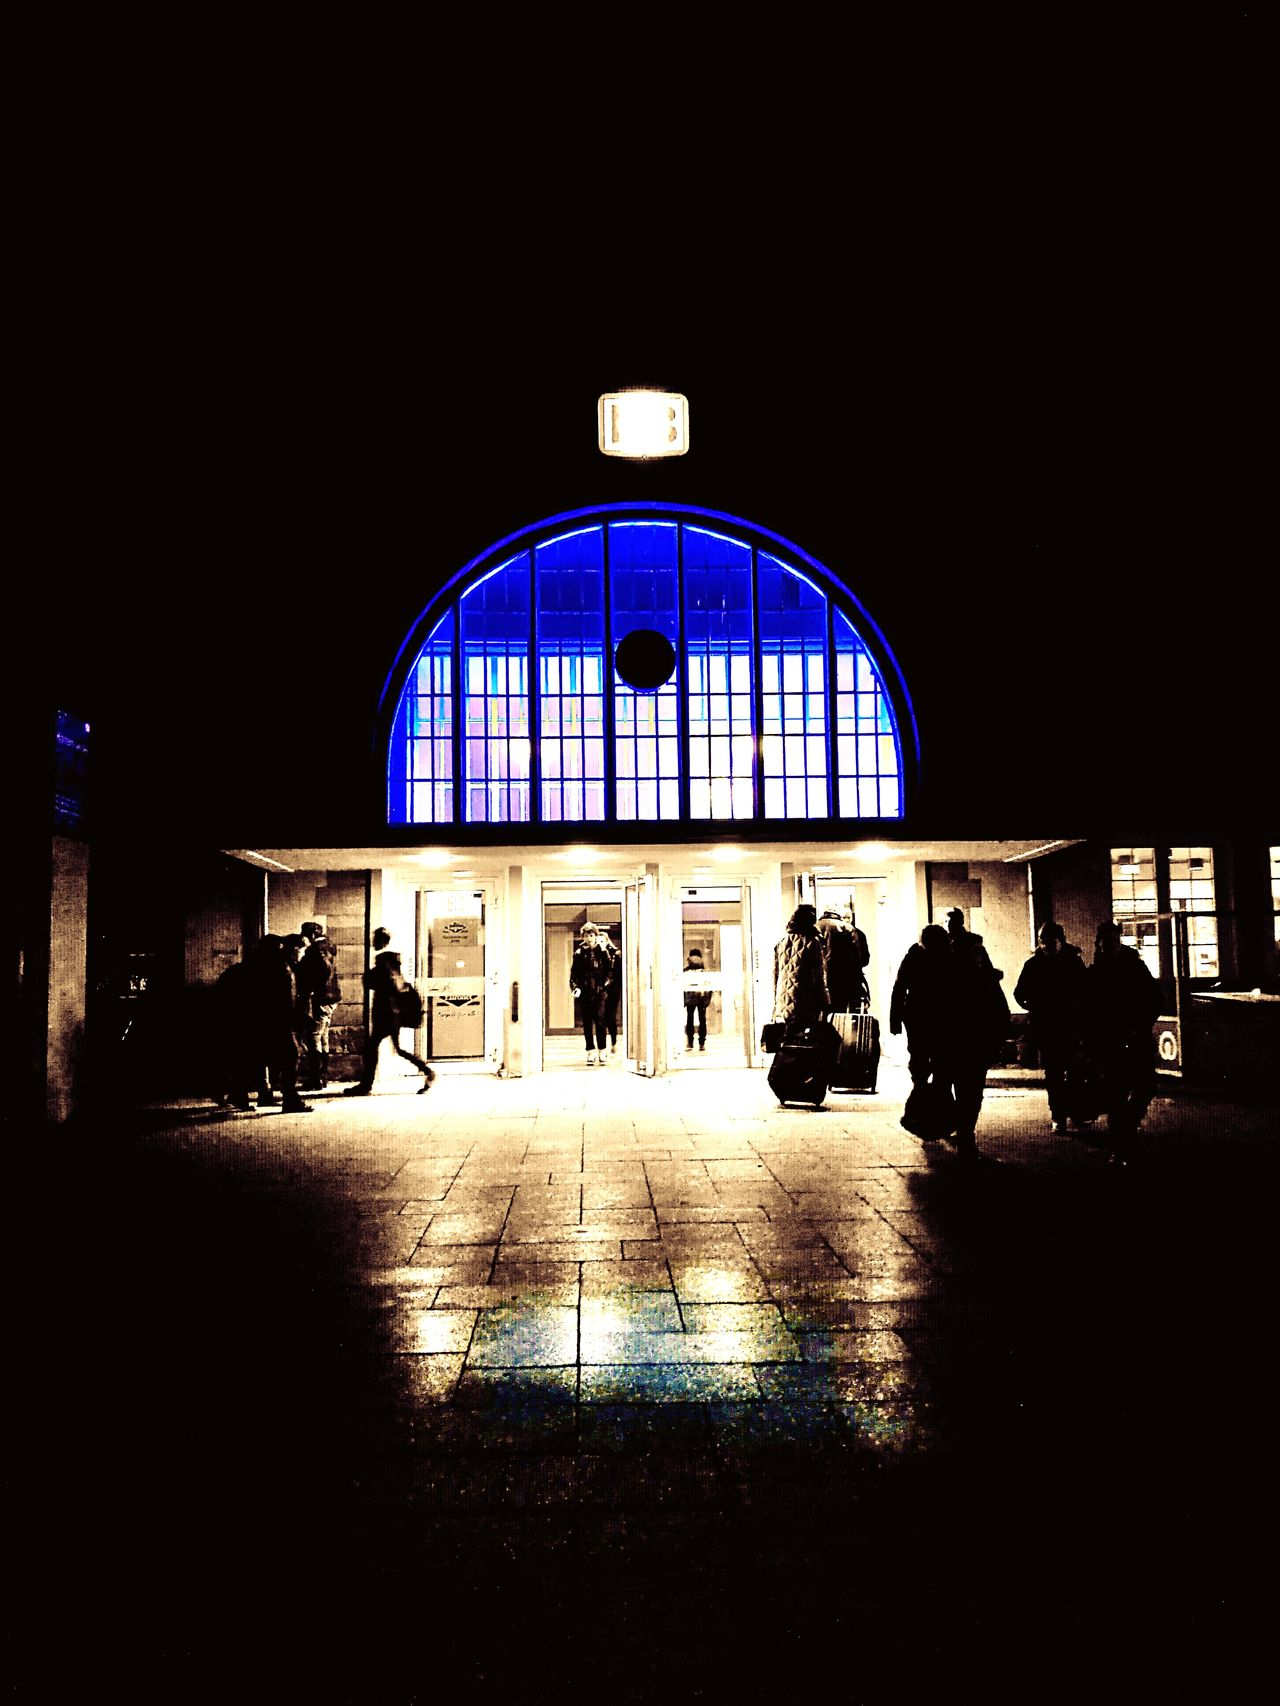 Architecture Arch Travel Destinations Railroad Station Built Structure Illuminated Blue Blue Color Huawei P9 Leica HuaweiP9 HuaweiP9Photography Huaweiphotography Bahnhof Haltern Am See